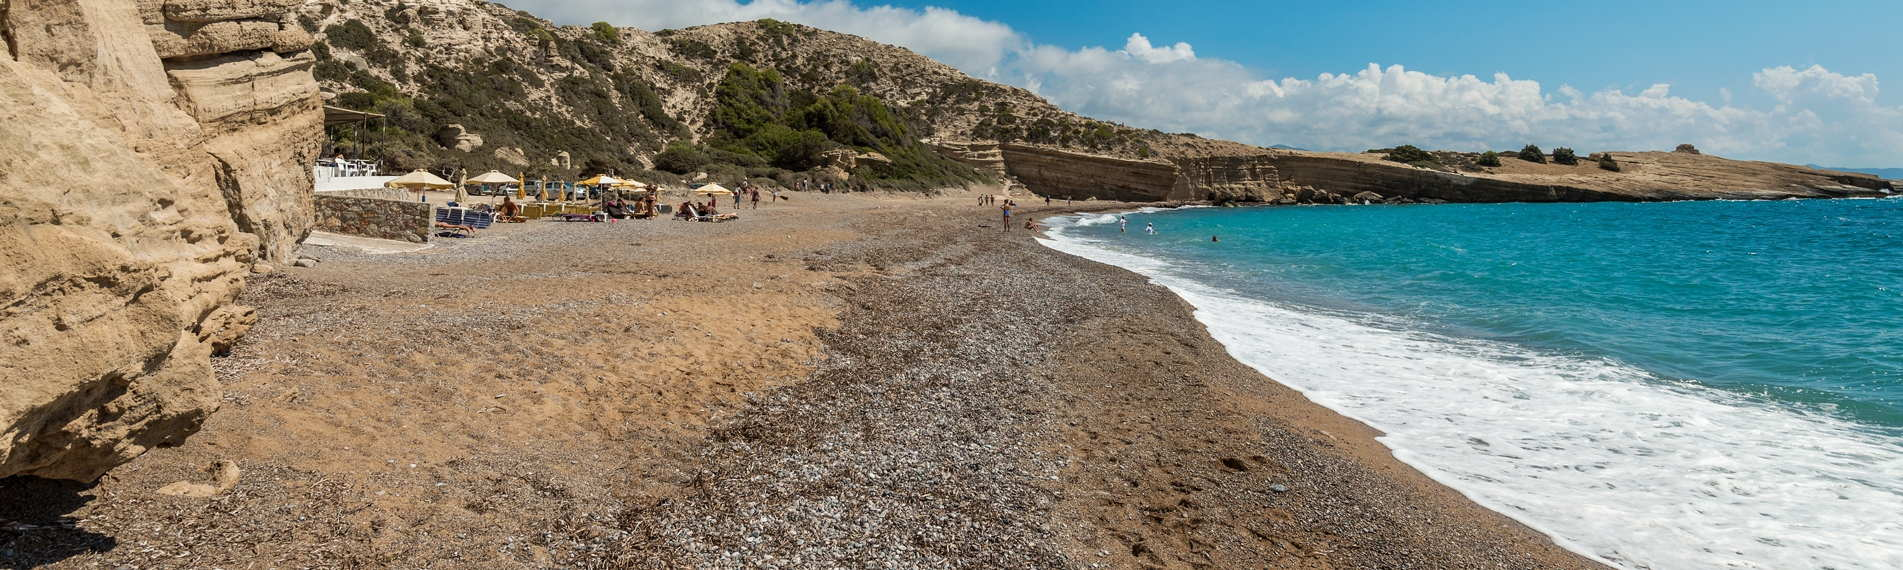 A Sandy beach on the island of Fourni in the North East Aegean